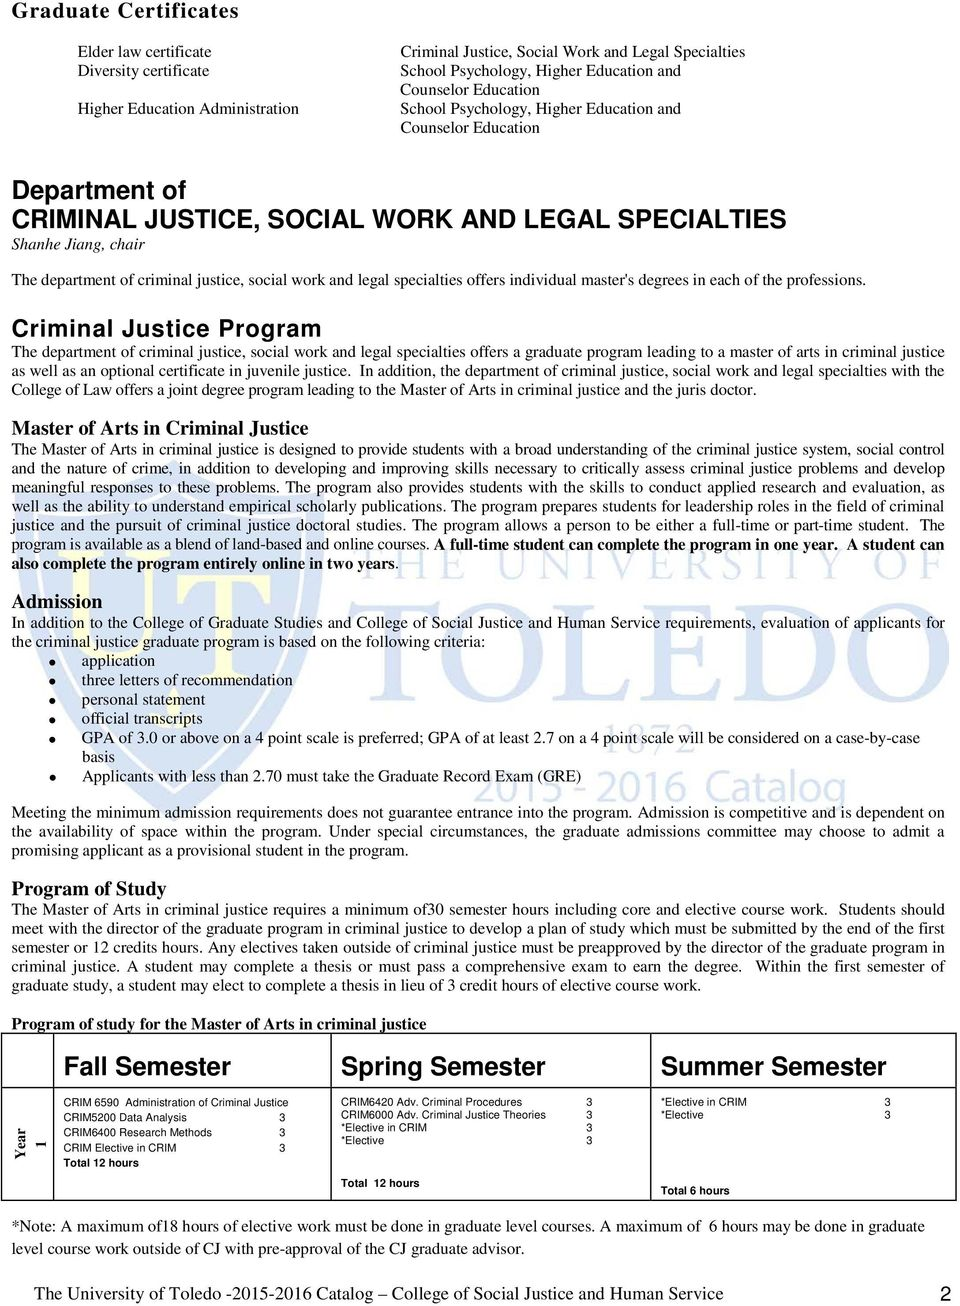 Criminal Justice Program The department of criminal justice, social work and legal specialties offers a graduate program leading to a master of arts in criminal justice as well as an optional